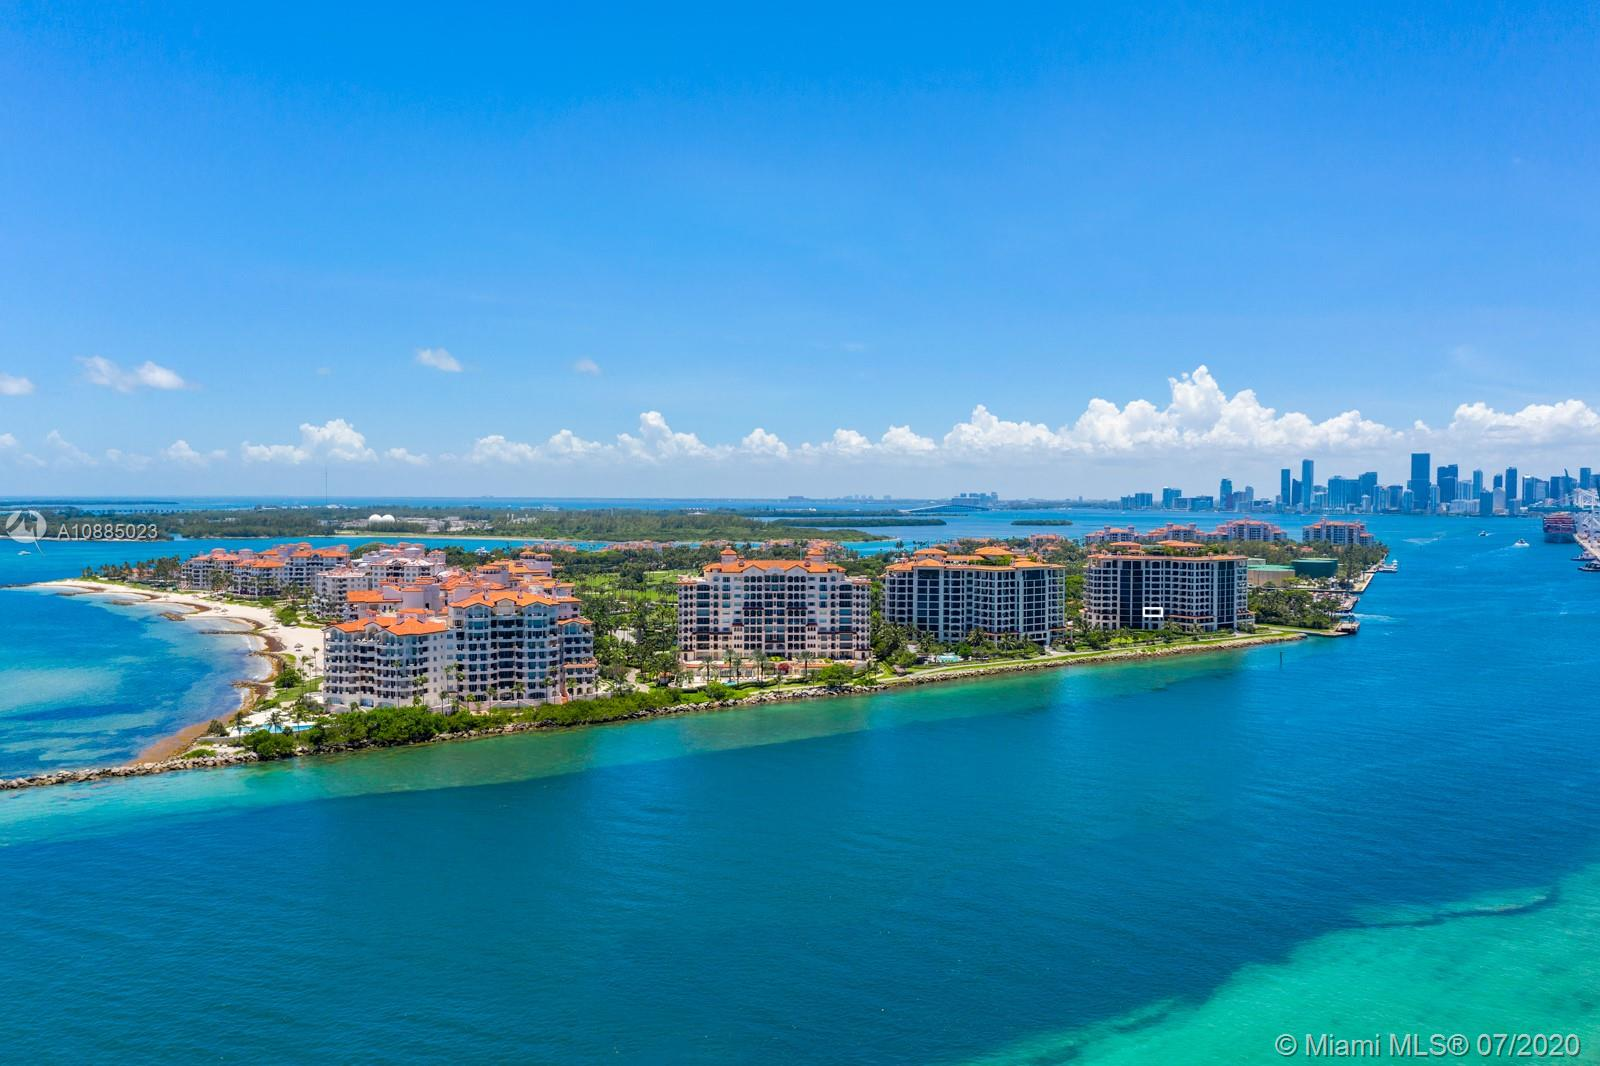 6835 Fisher Island Dr, Unit #6835 Luxury Real Estate